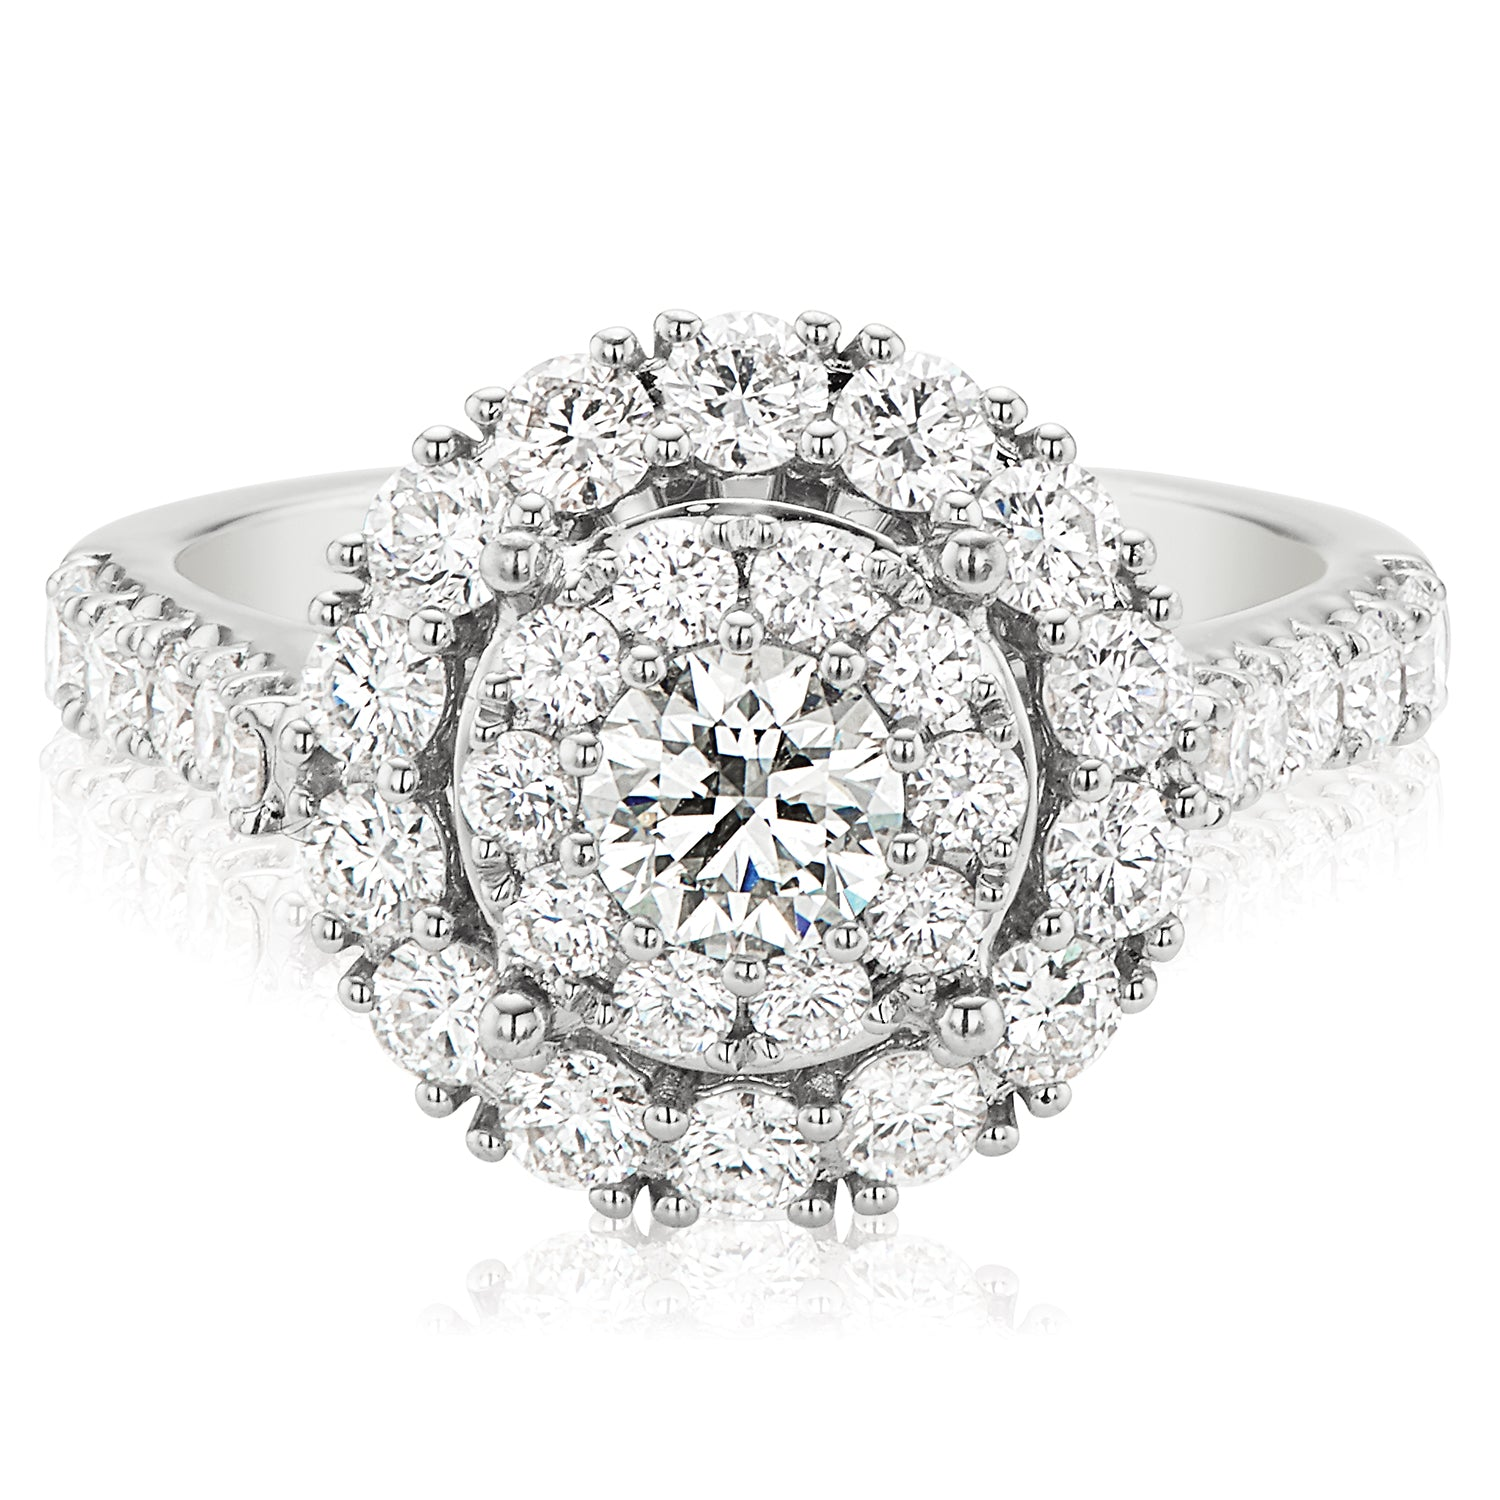 Halo 18ct White Gold Round Brilliant Cut with 1.85 CARAT tw of Diamonds